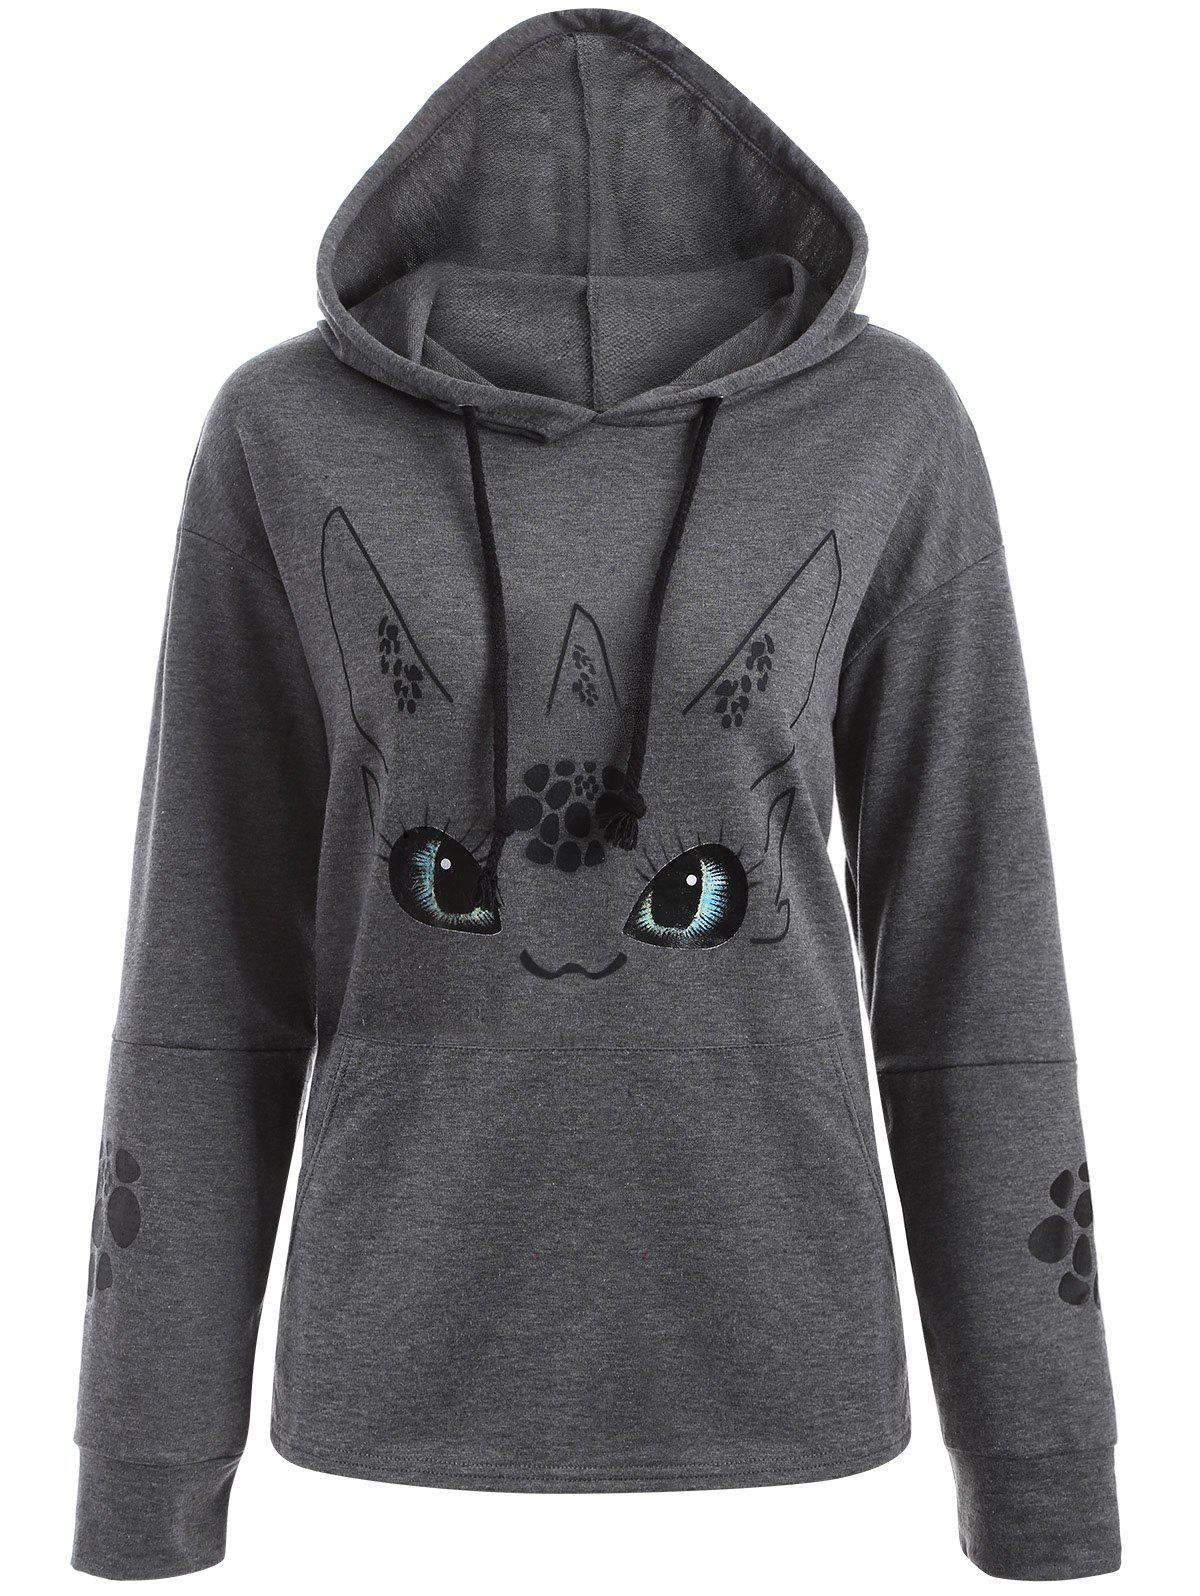 Trendy Cartoon Character Graphic Hoodie